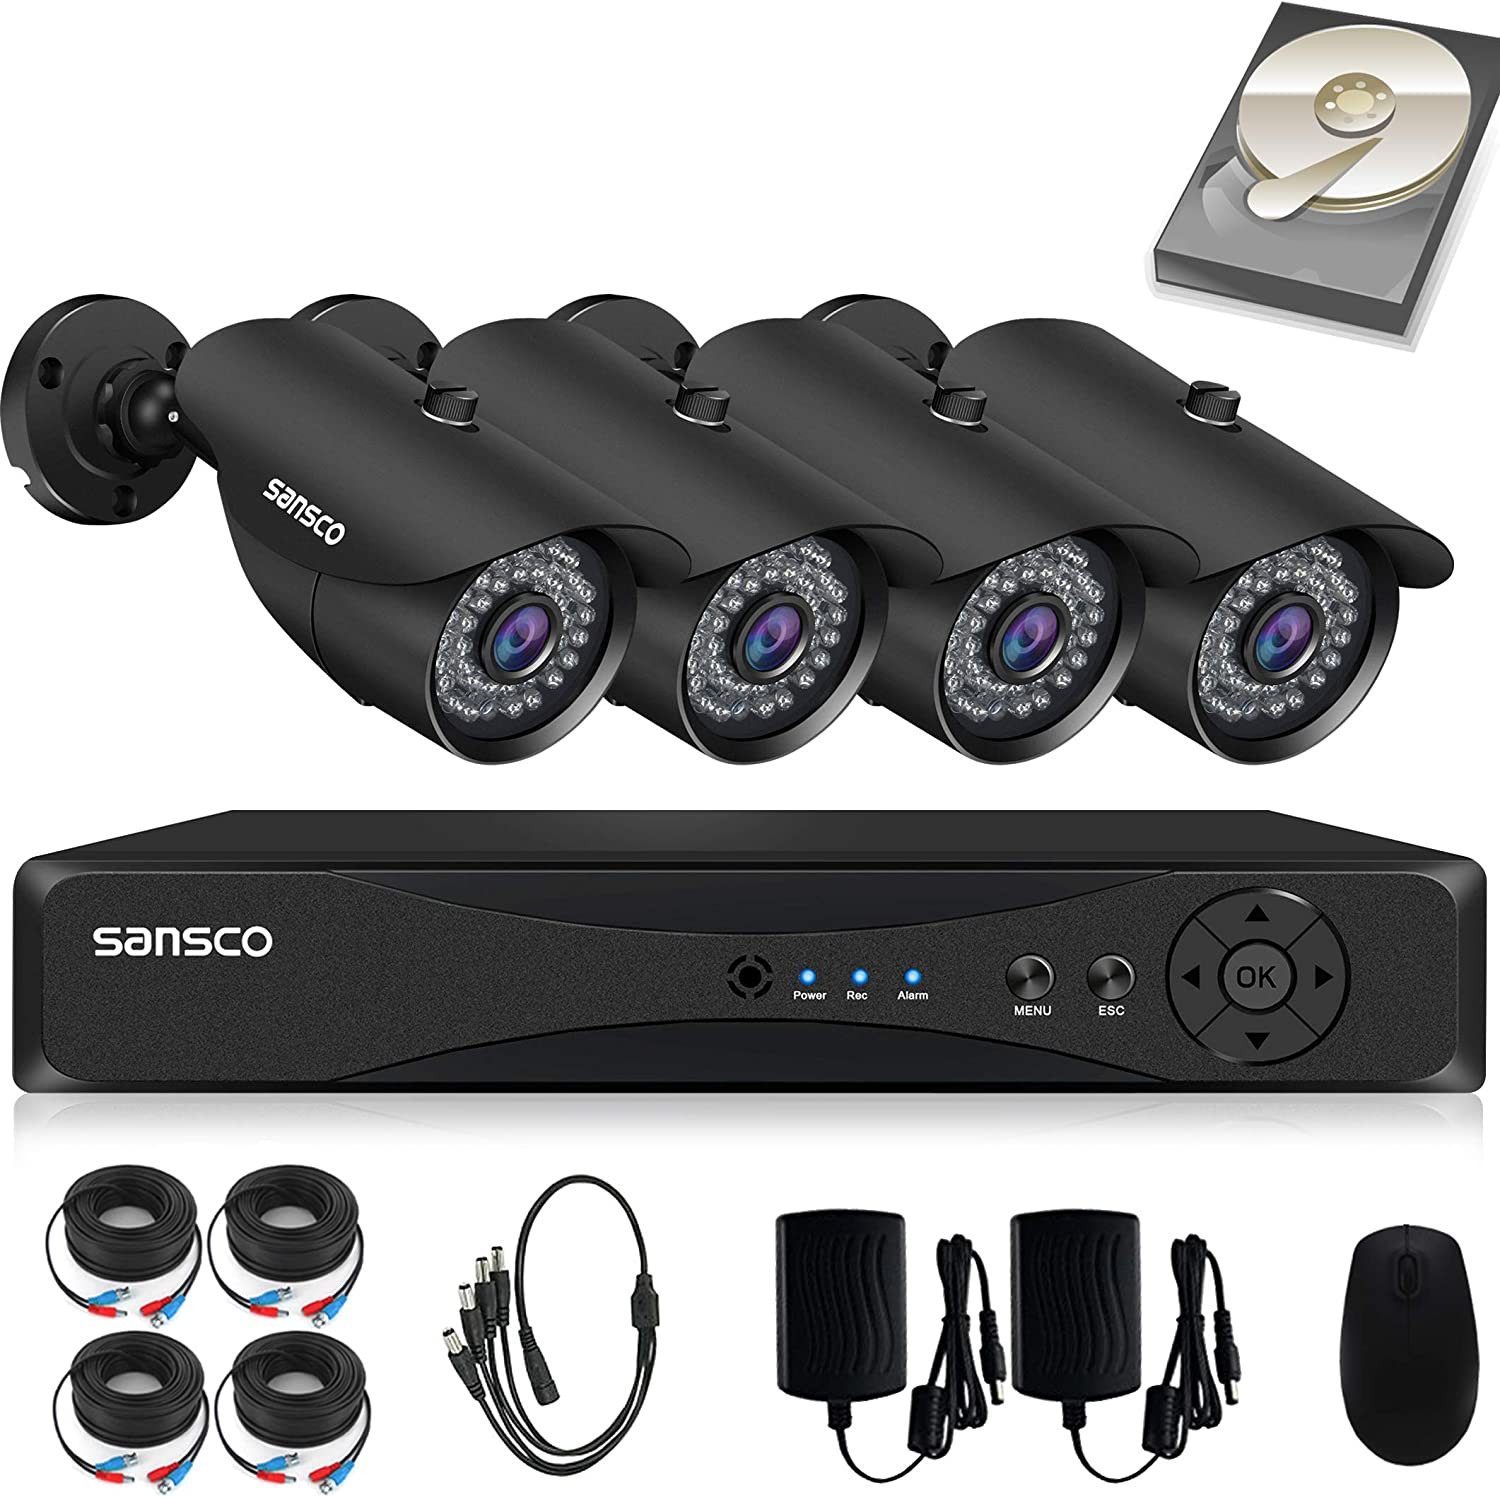 SANSCO CCTV Security Camera System with 4 Channel 1080P DVR, 4 Bullet Cameras All HD 1080p 2MP , 1TB Internal Hard Drive Disk – All-in-One Wired Surveillance Camera Kit